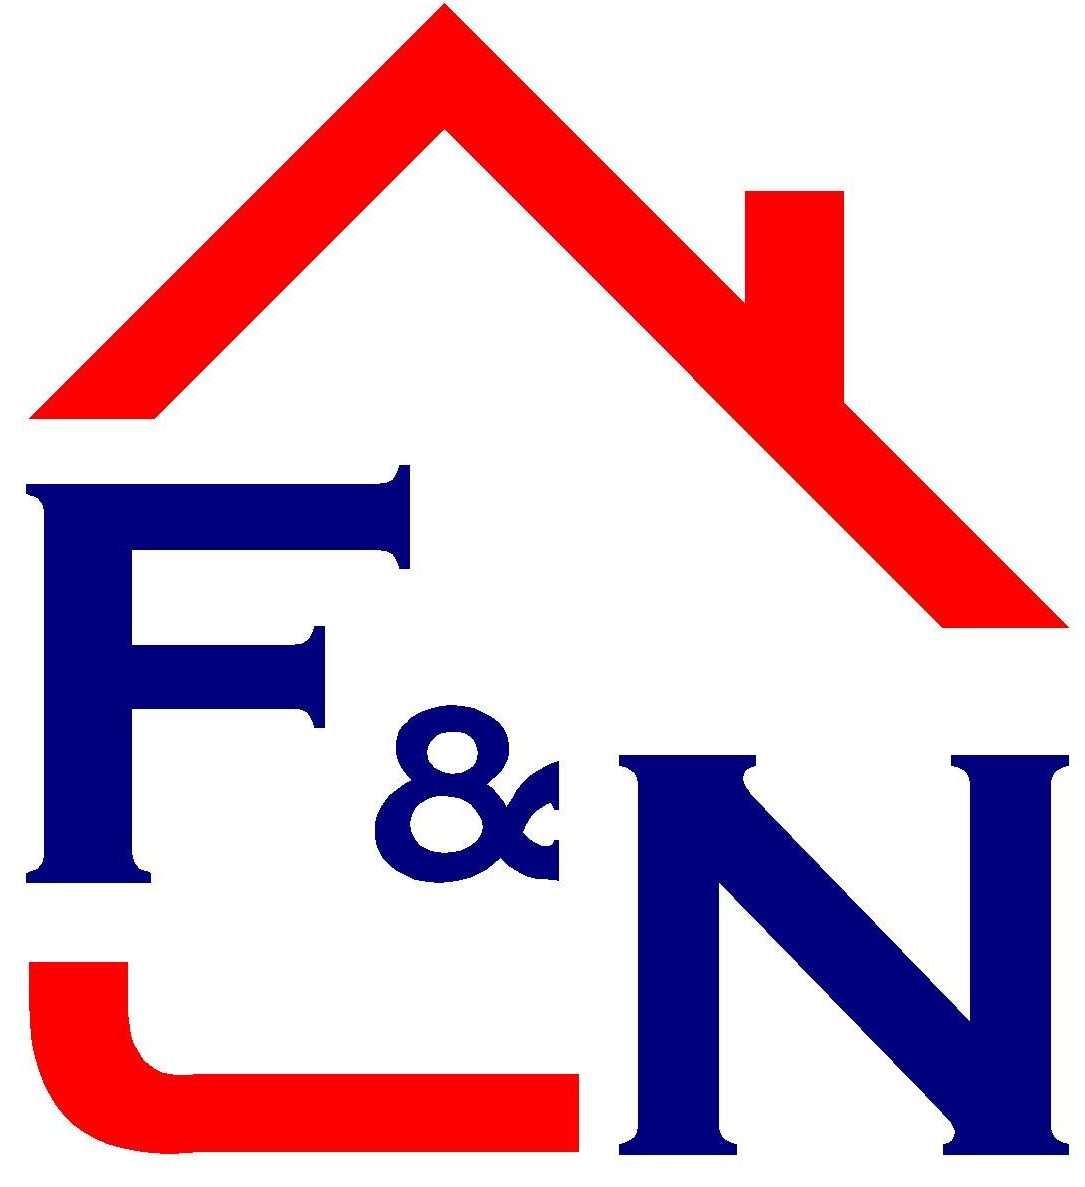 fandndesign2buildltd.com